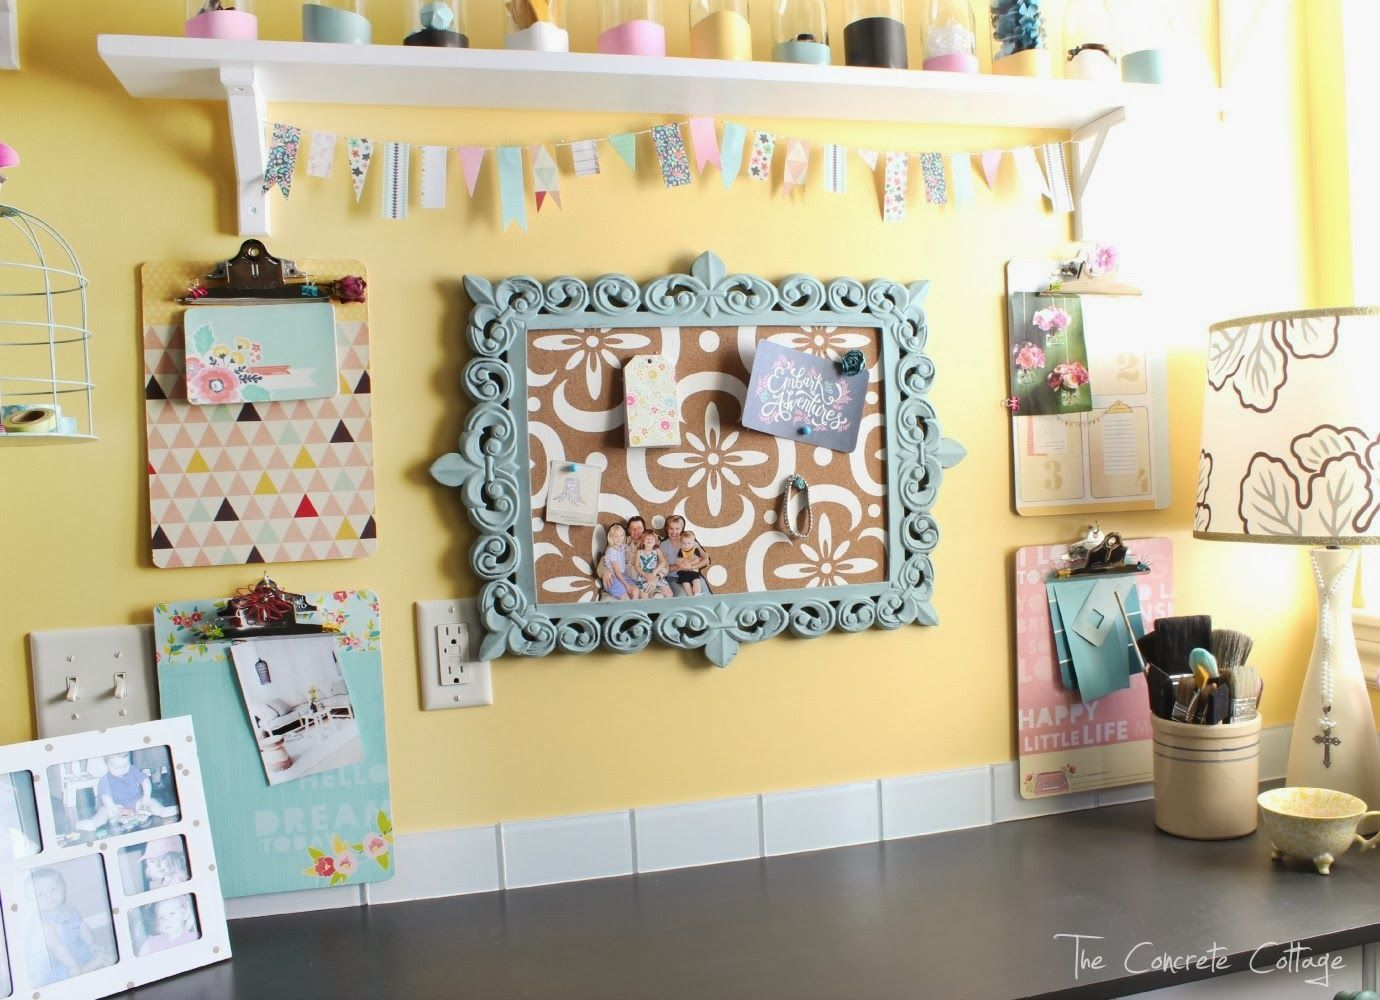 The Concrete Cottage: Craft Room Reveal - I love all her decor ...